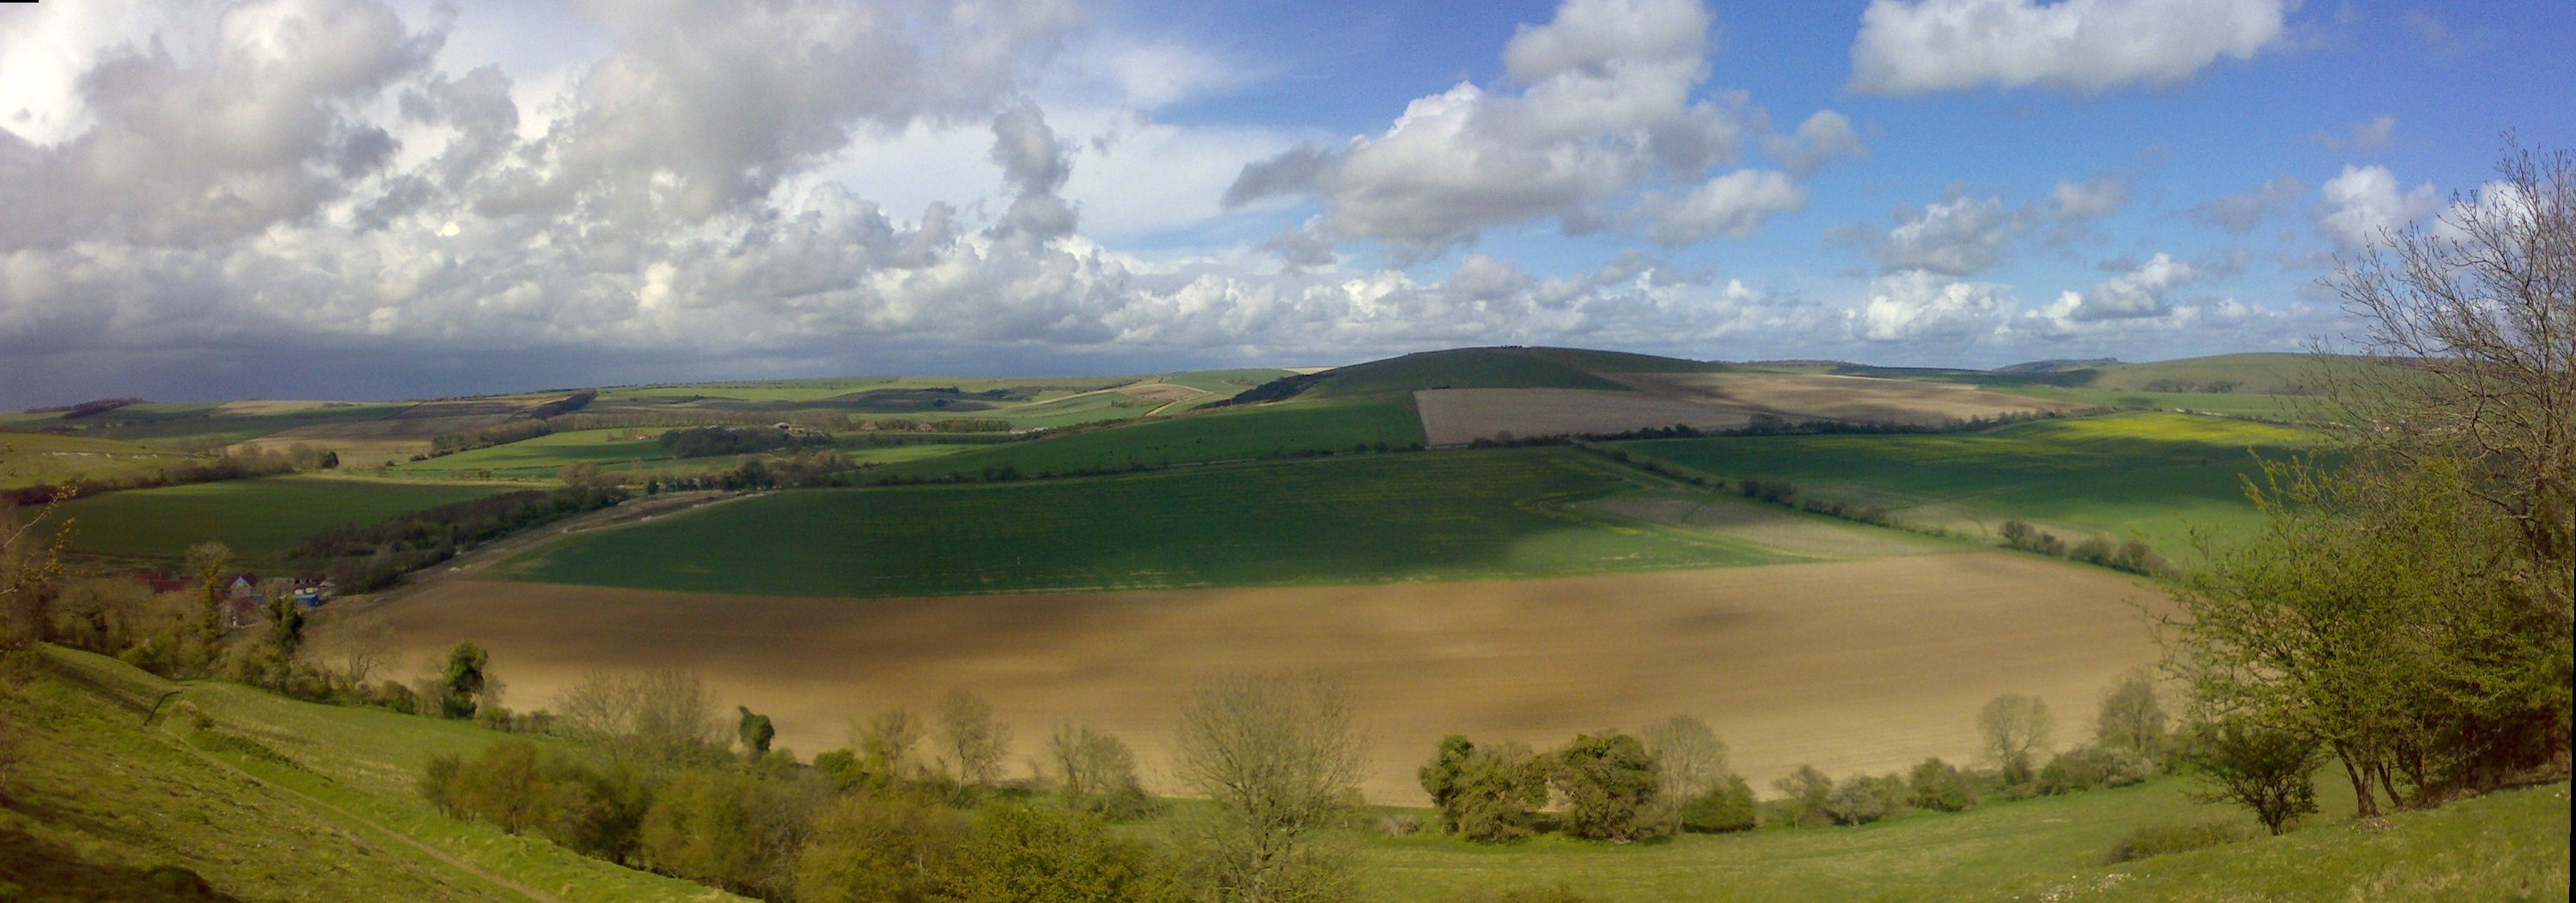 hotels near south downs sussex